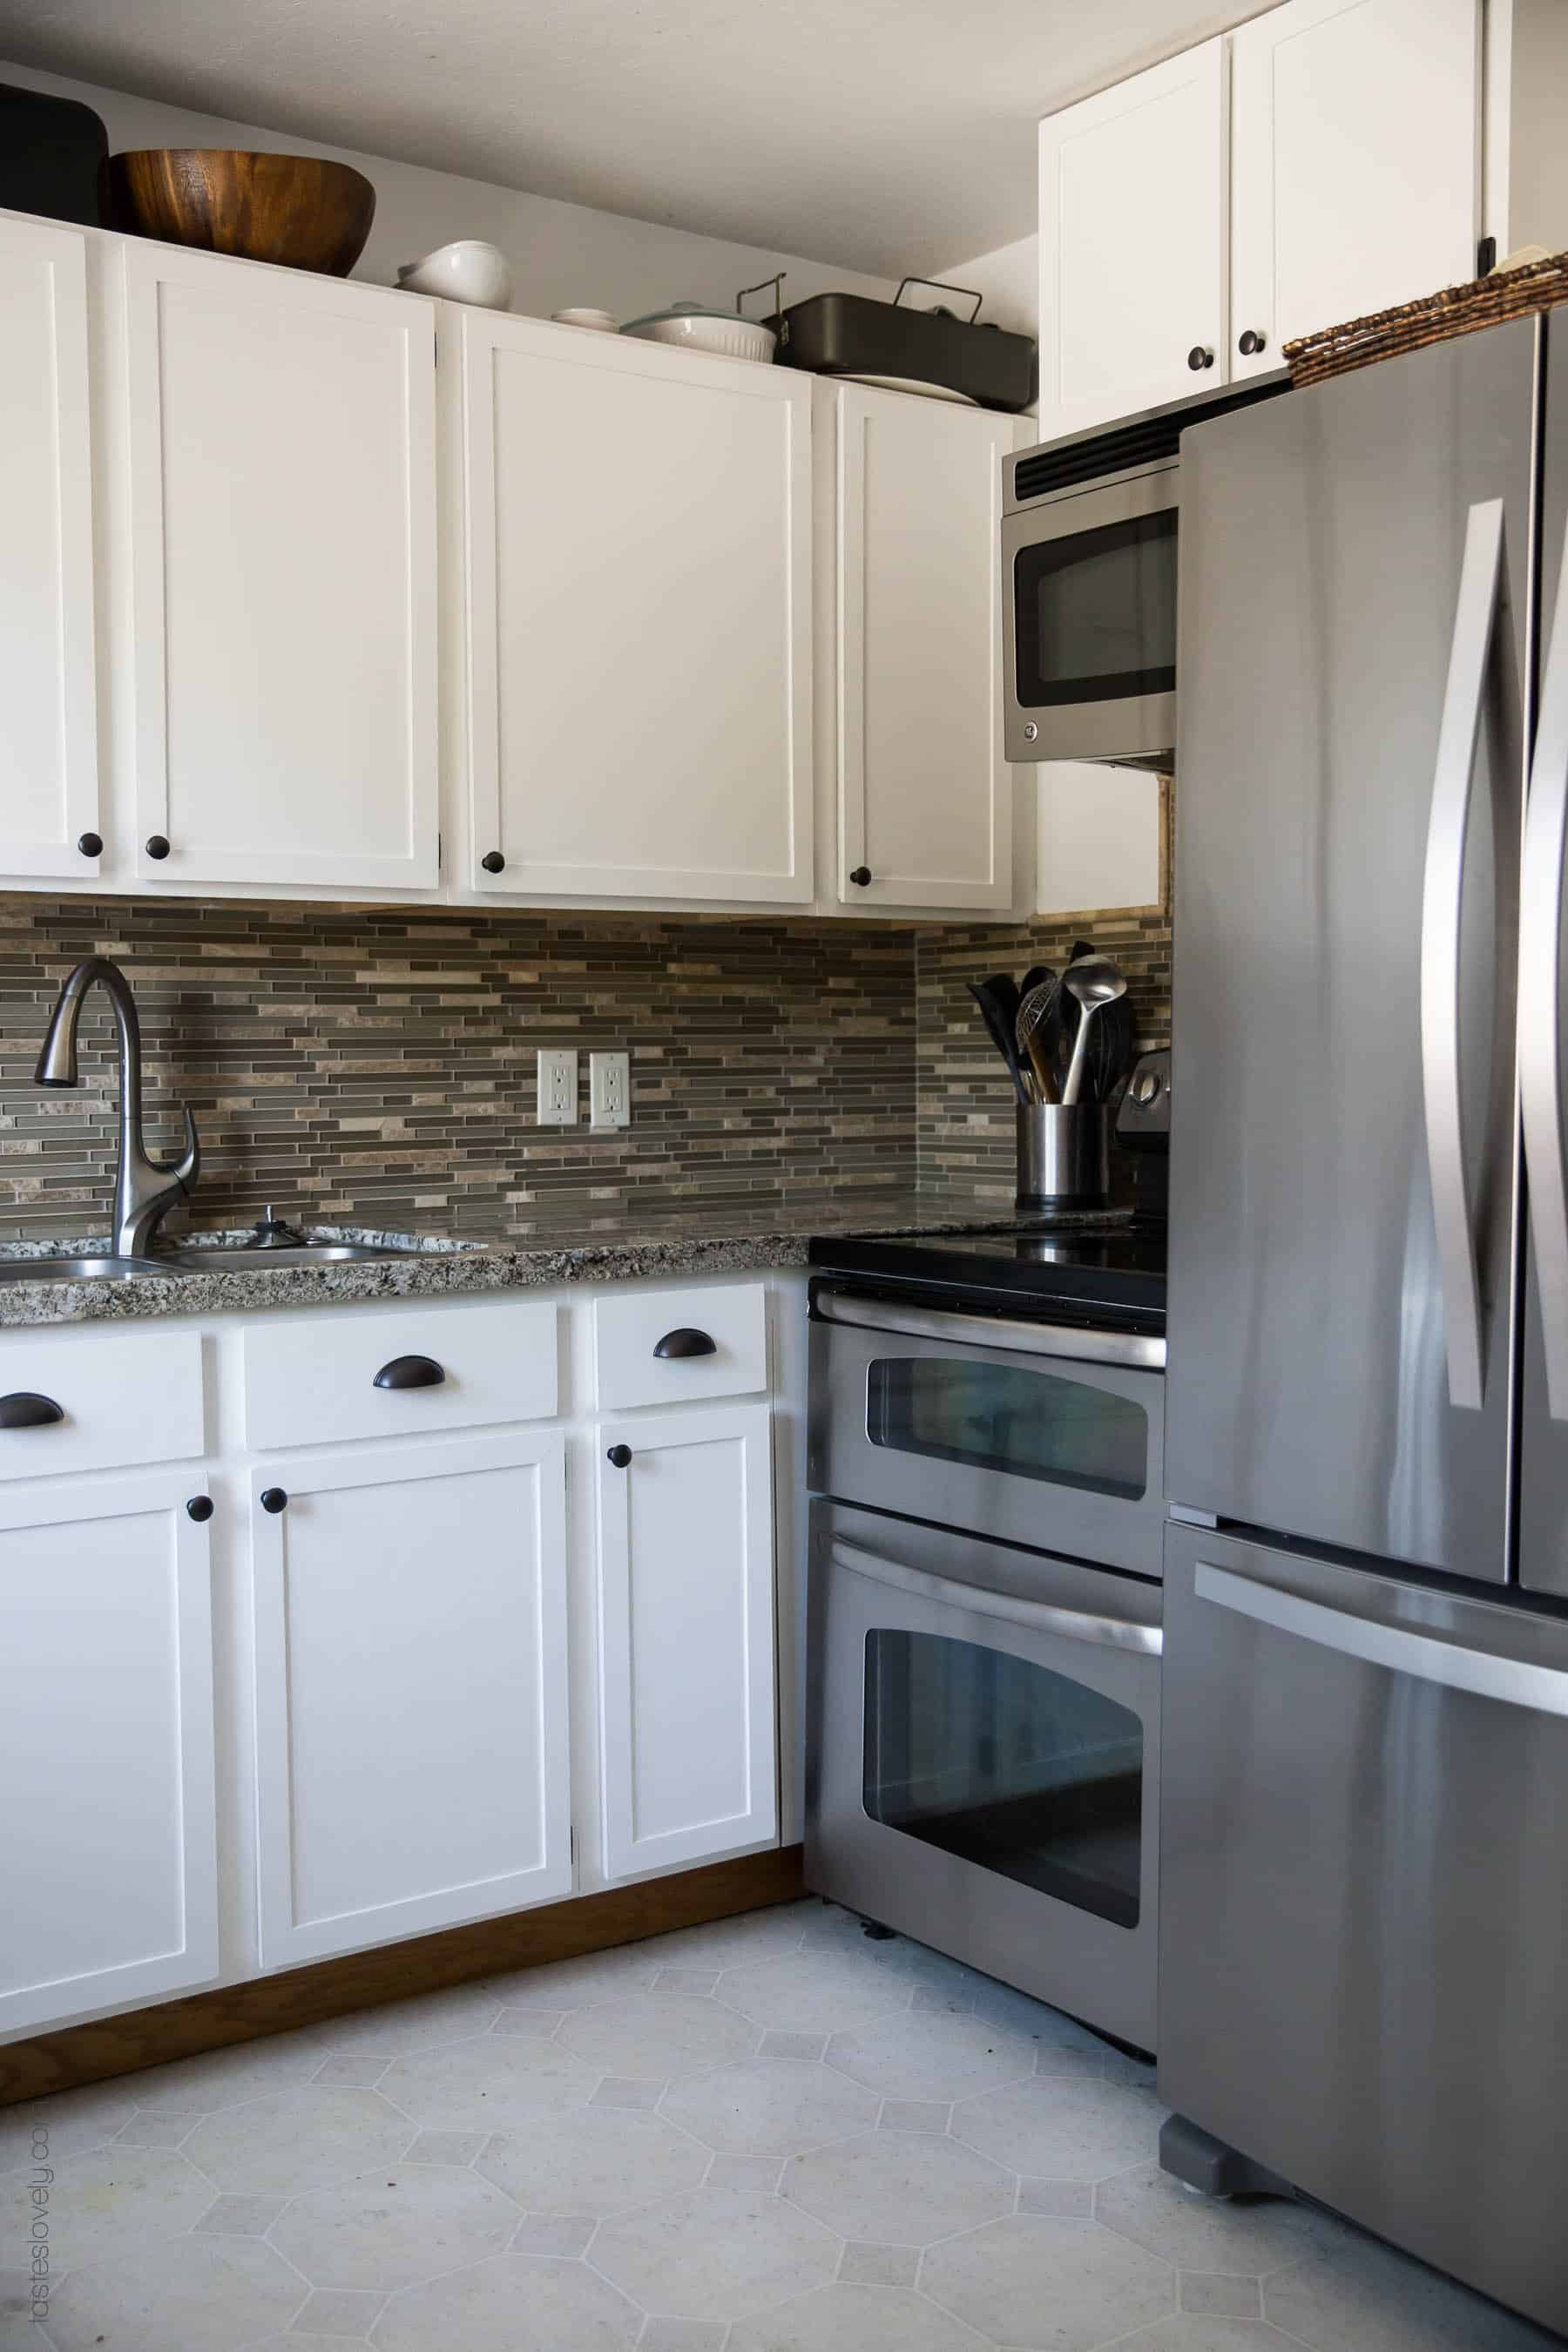 Our $281 DIY Kitchen Remodel - DIY painting oak cabinets white, adding wood trim to